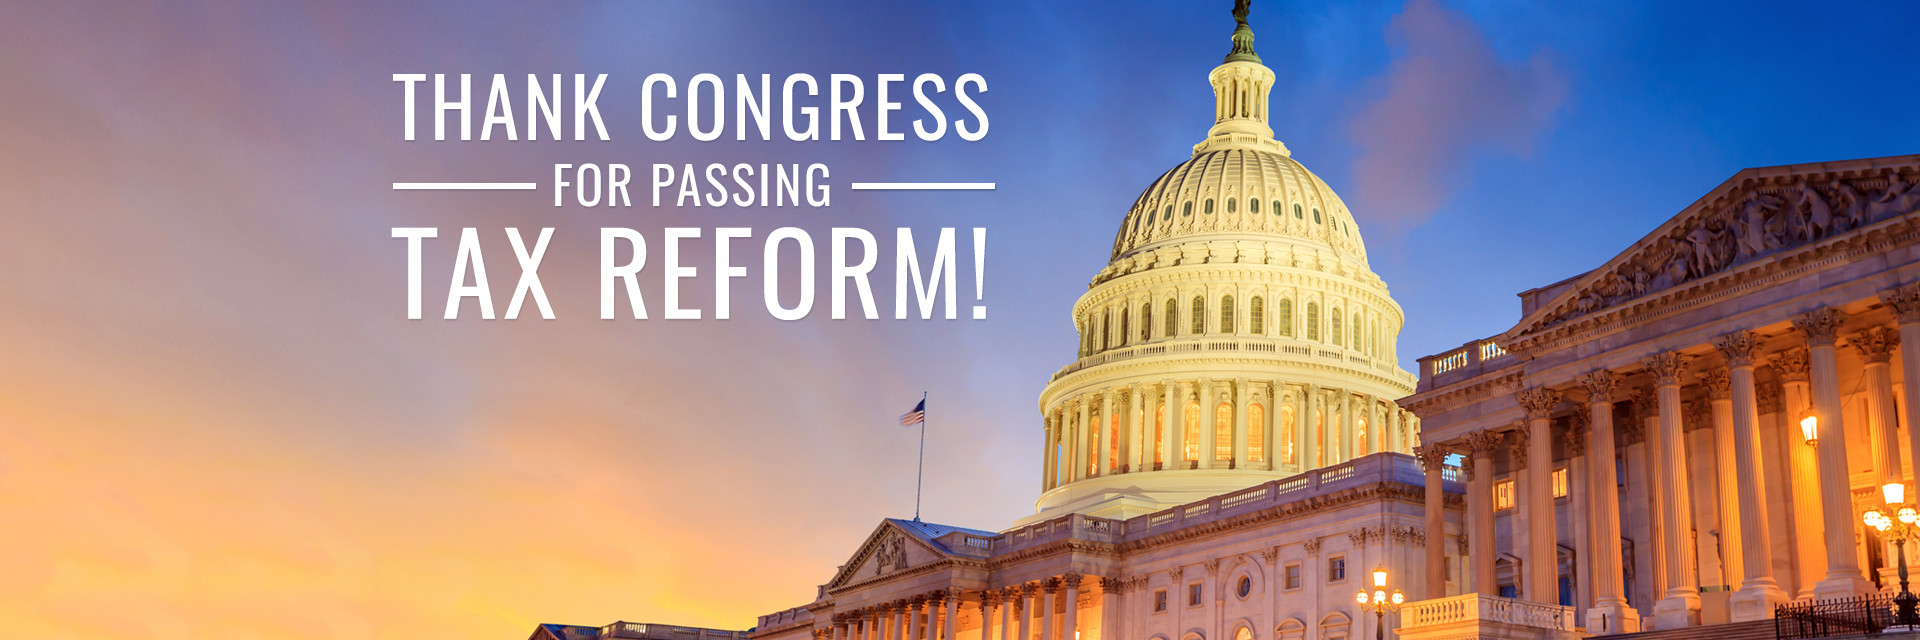 Thank-Congress-Tax-Reform-No-Petition-3